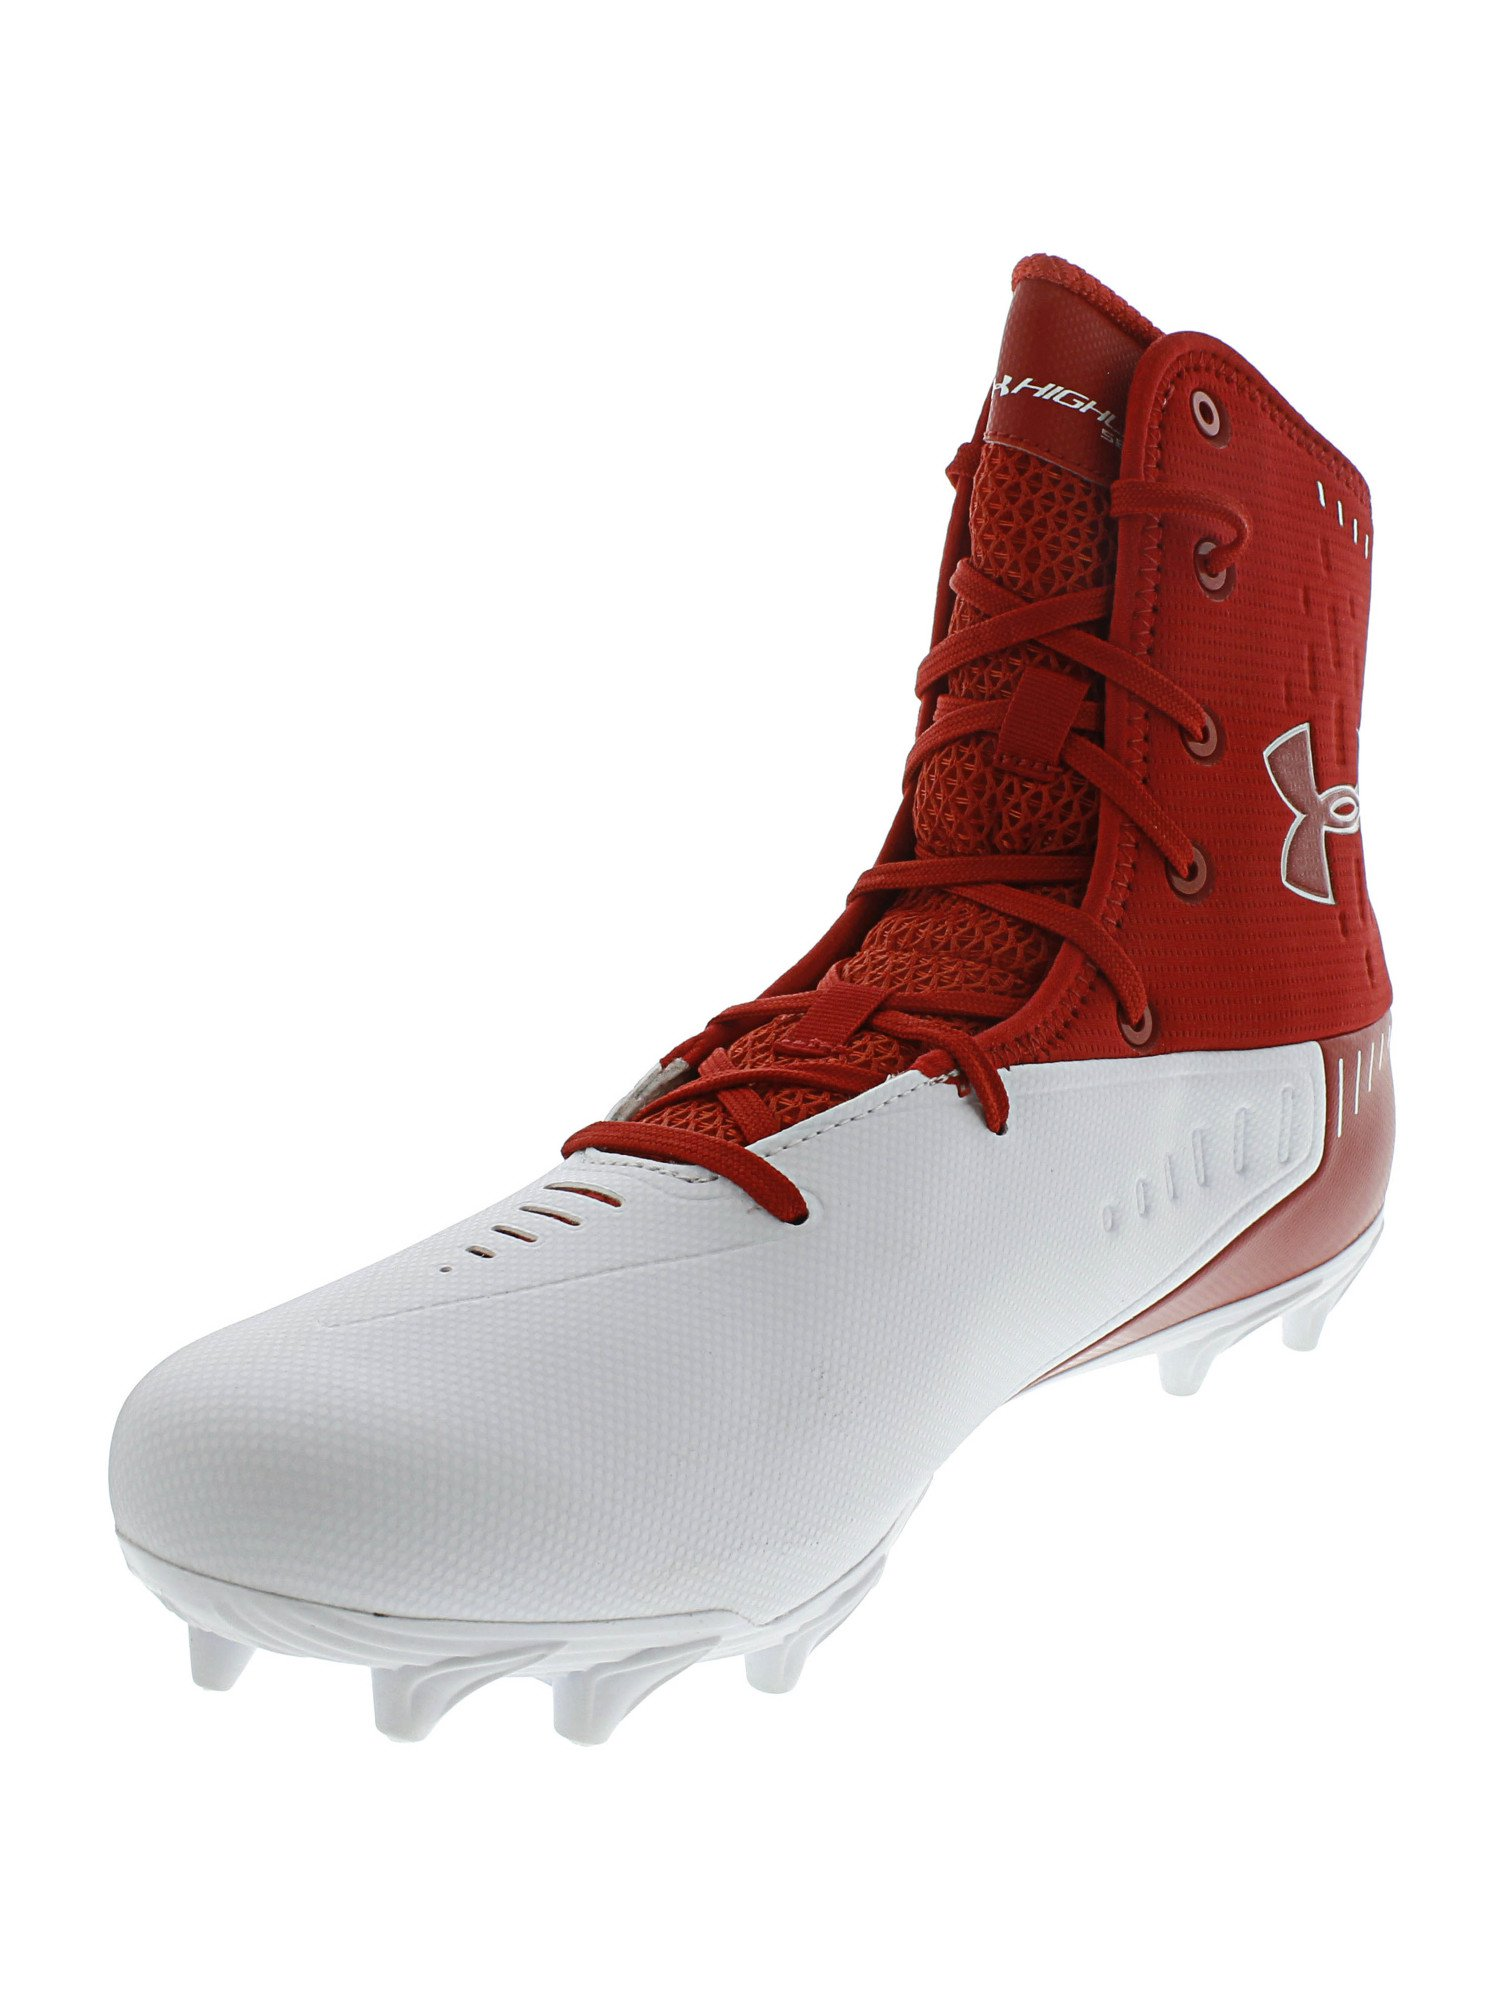 Details about  /Under Armour Highlight MC Men/'s Football Cleats Red White Multiple Sizes